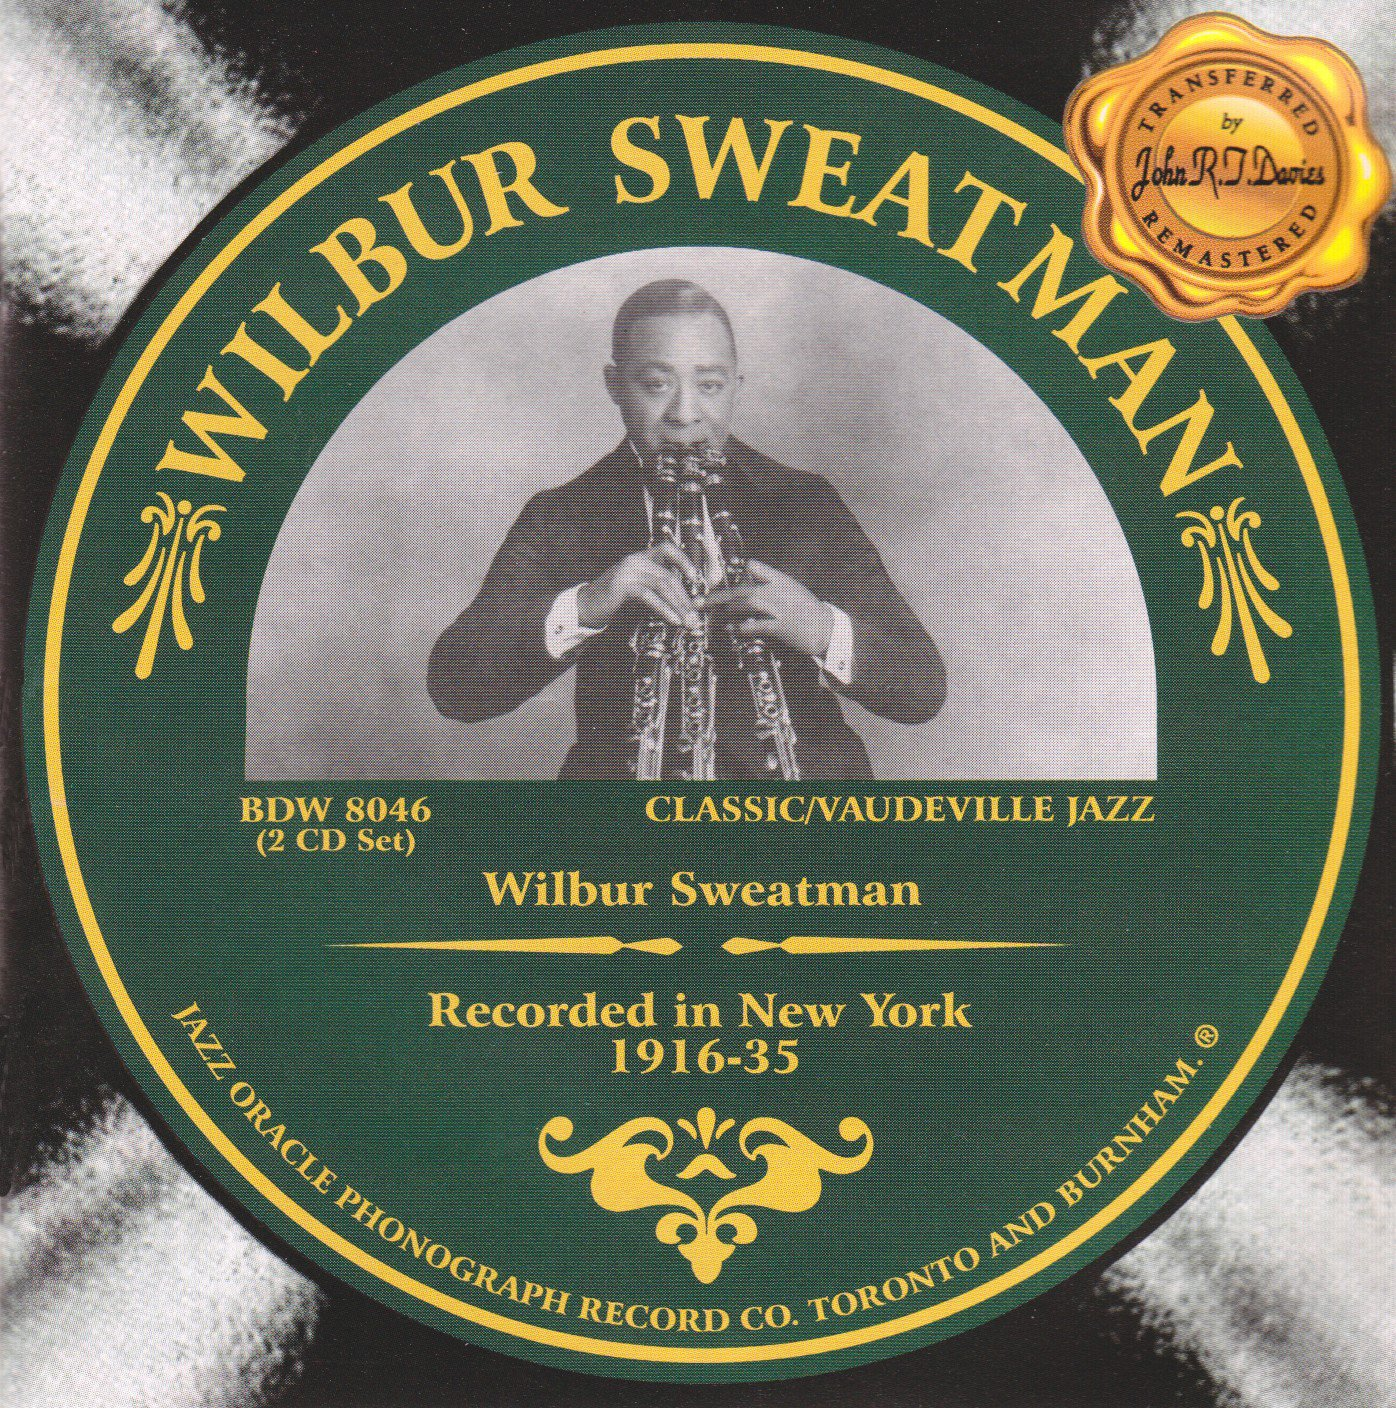 Recorded in New York 1916-35 by Jazz Oracle